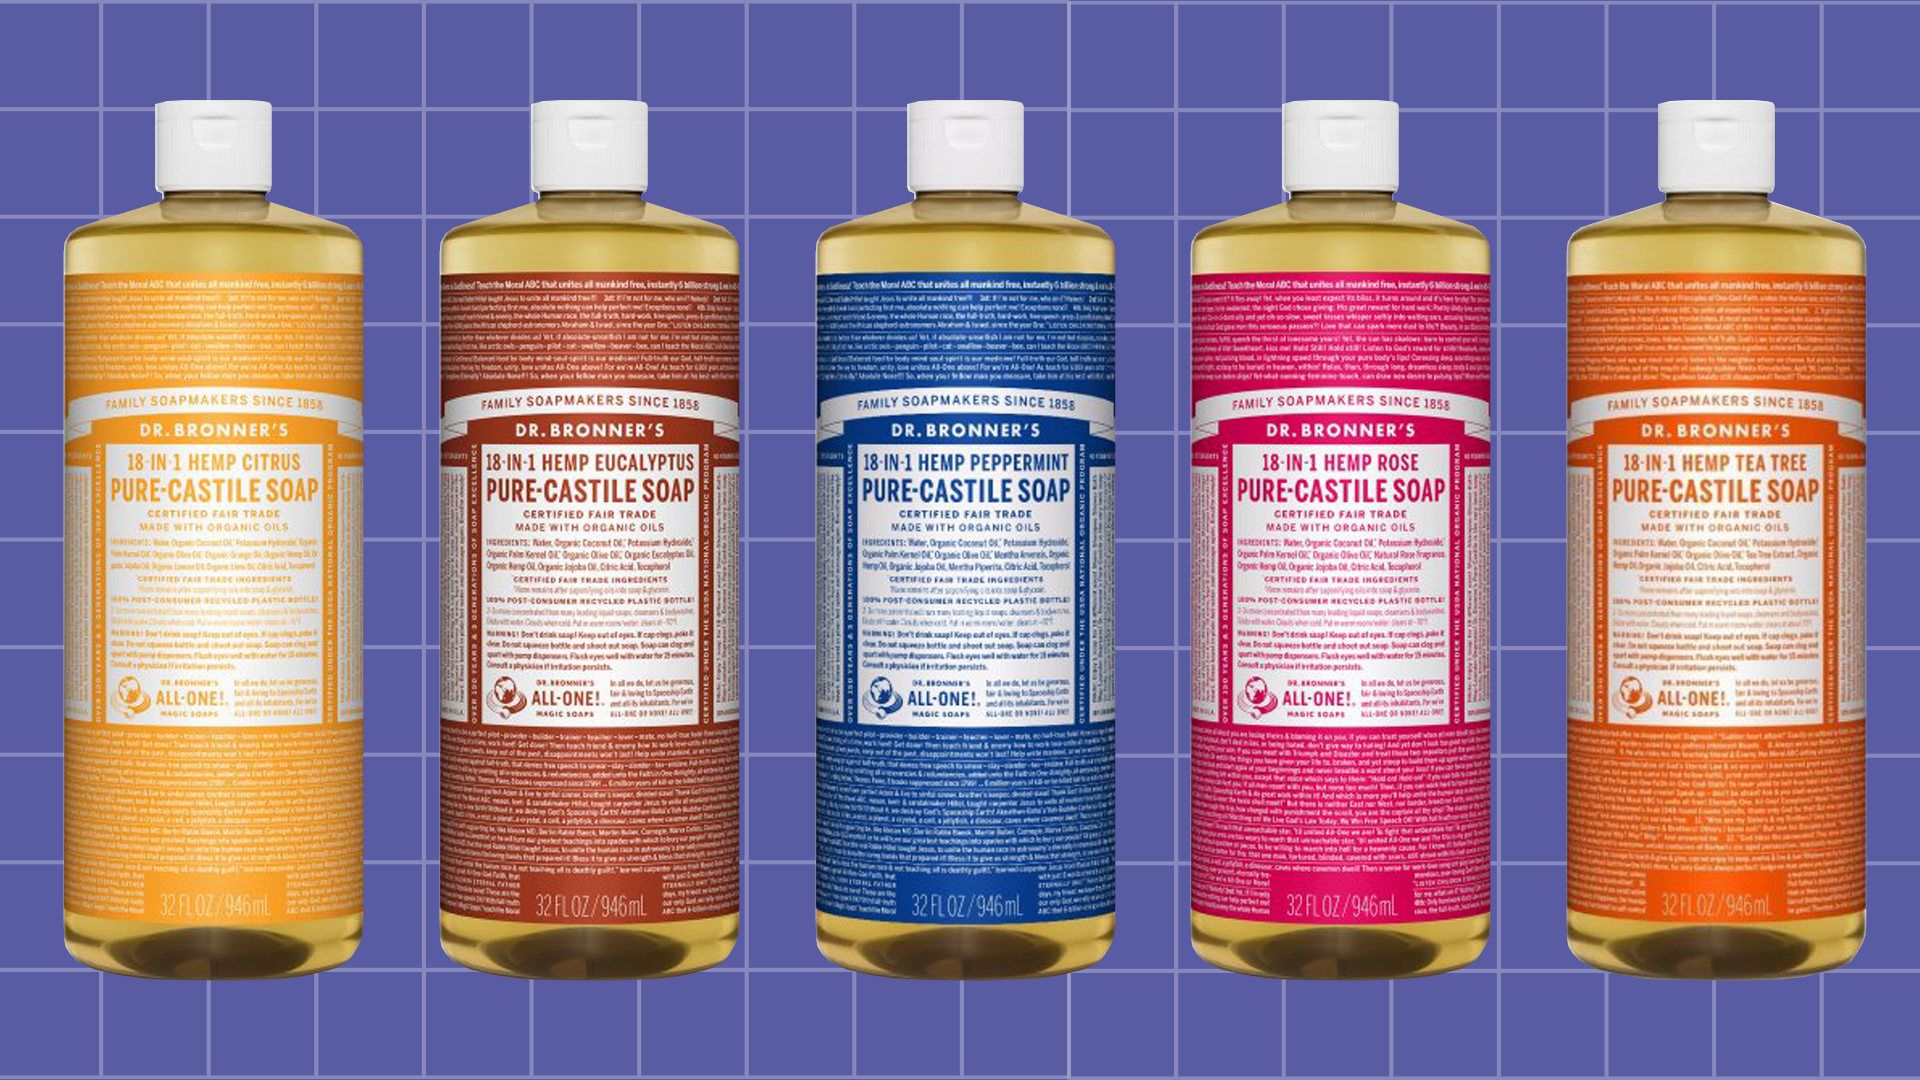 Dr  Bronner's in the age of wellness and wokeness - Vox